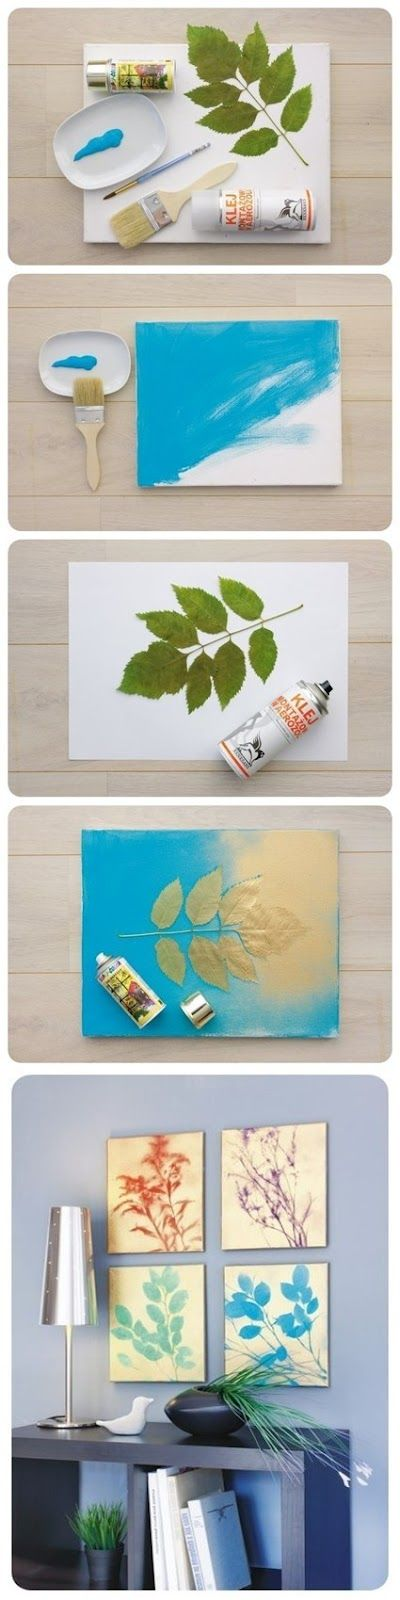 Leaf paintings - DIY